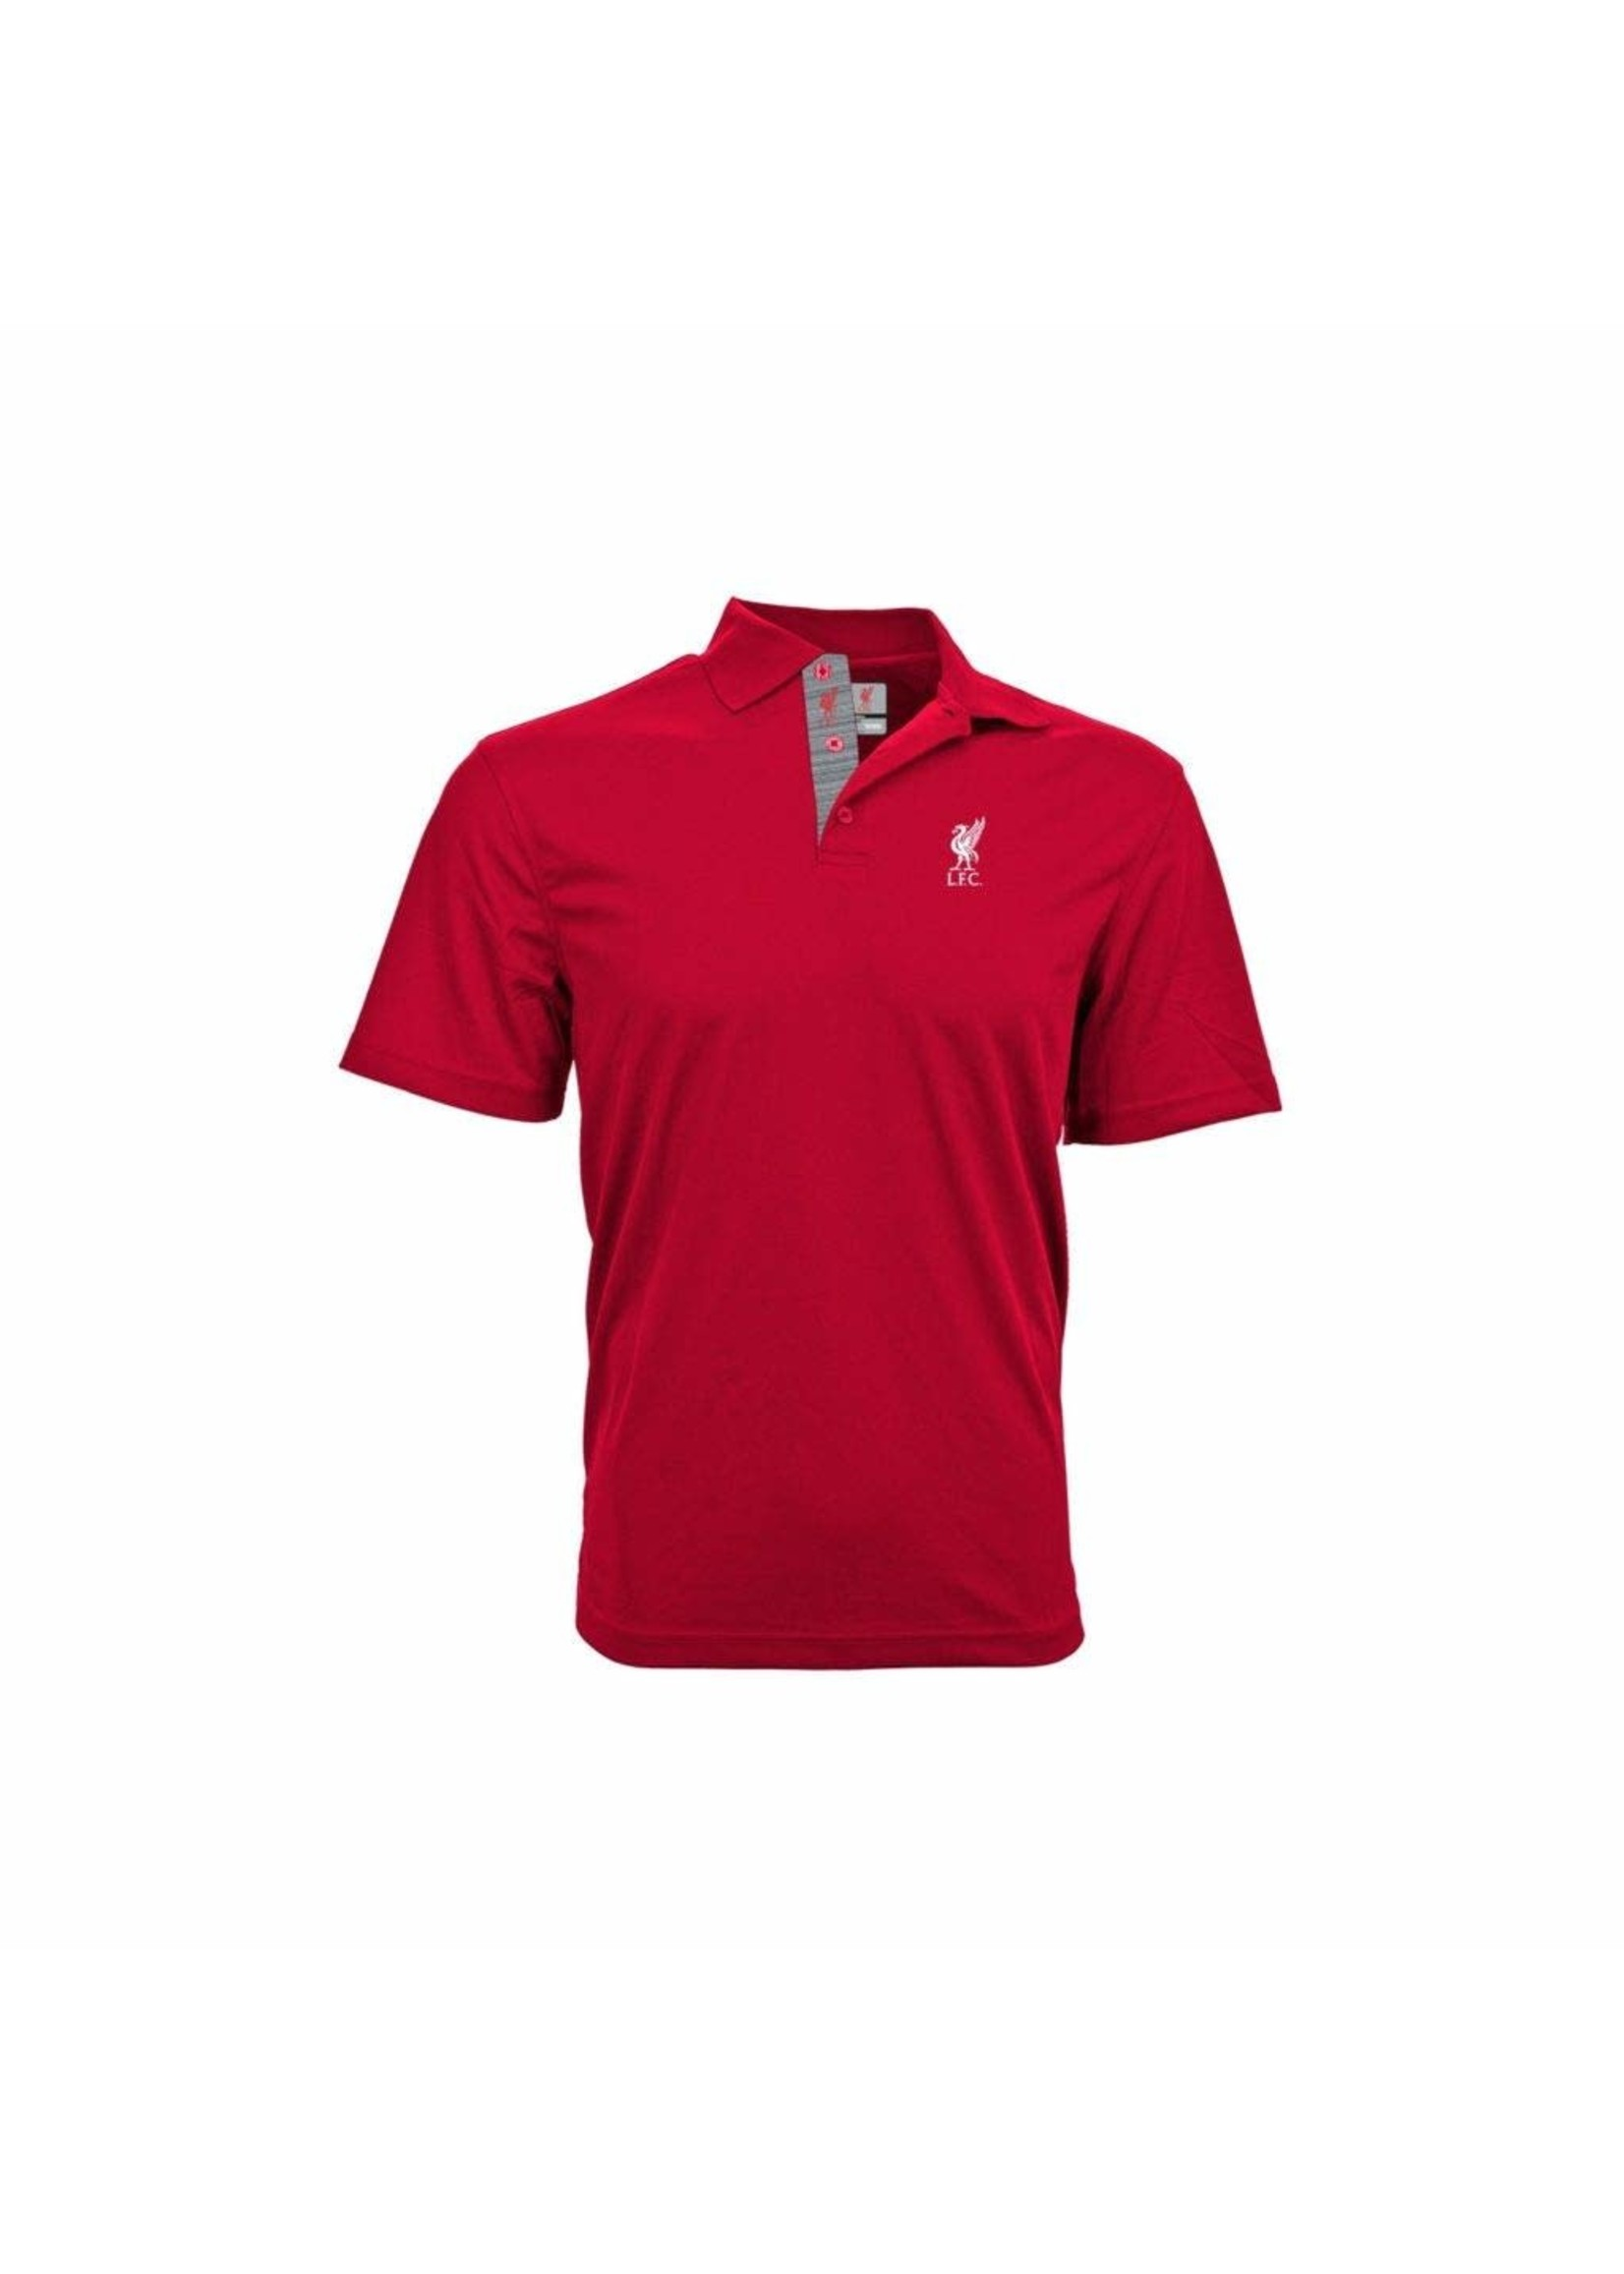 Liverpool Polo Shirt - Red/White